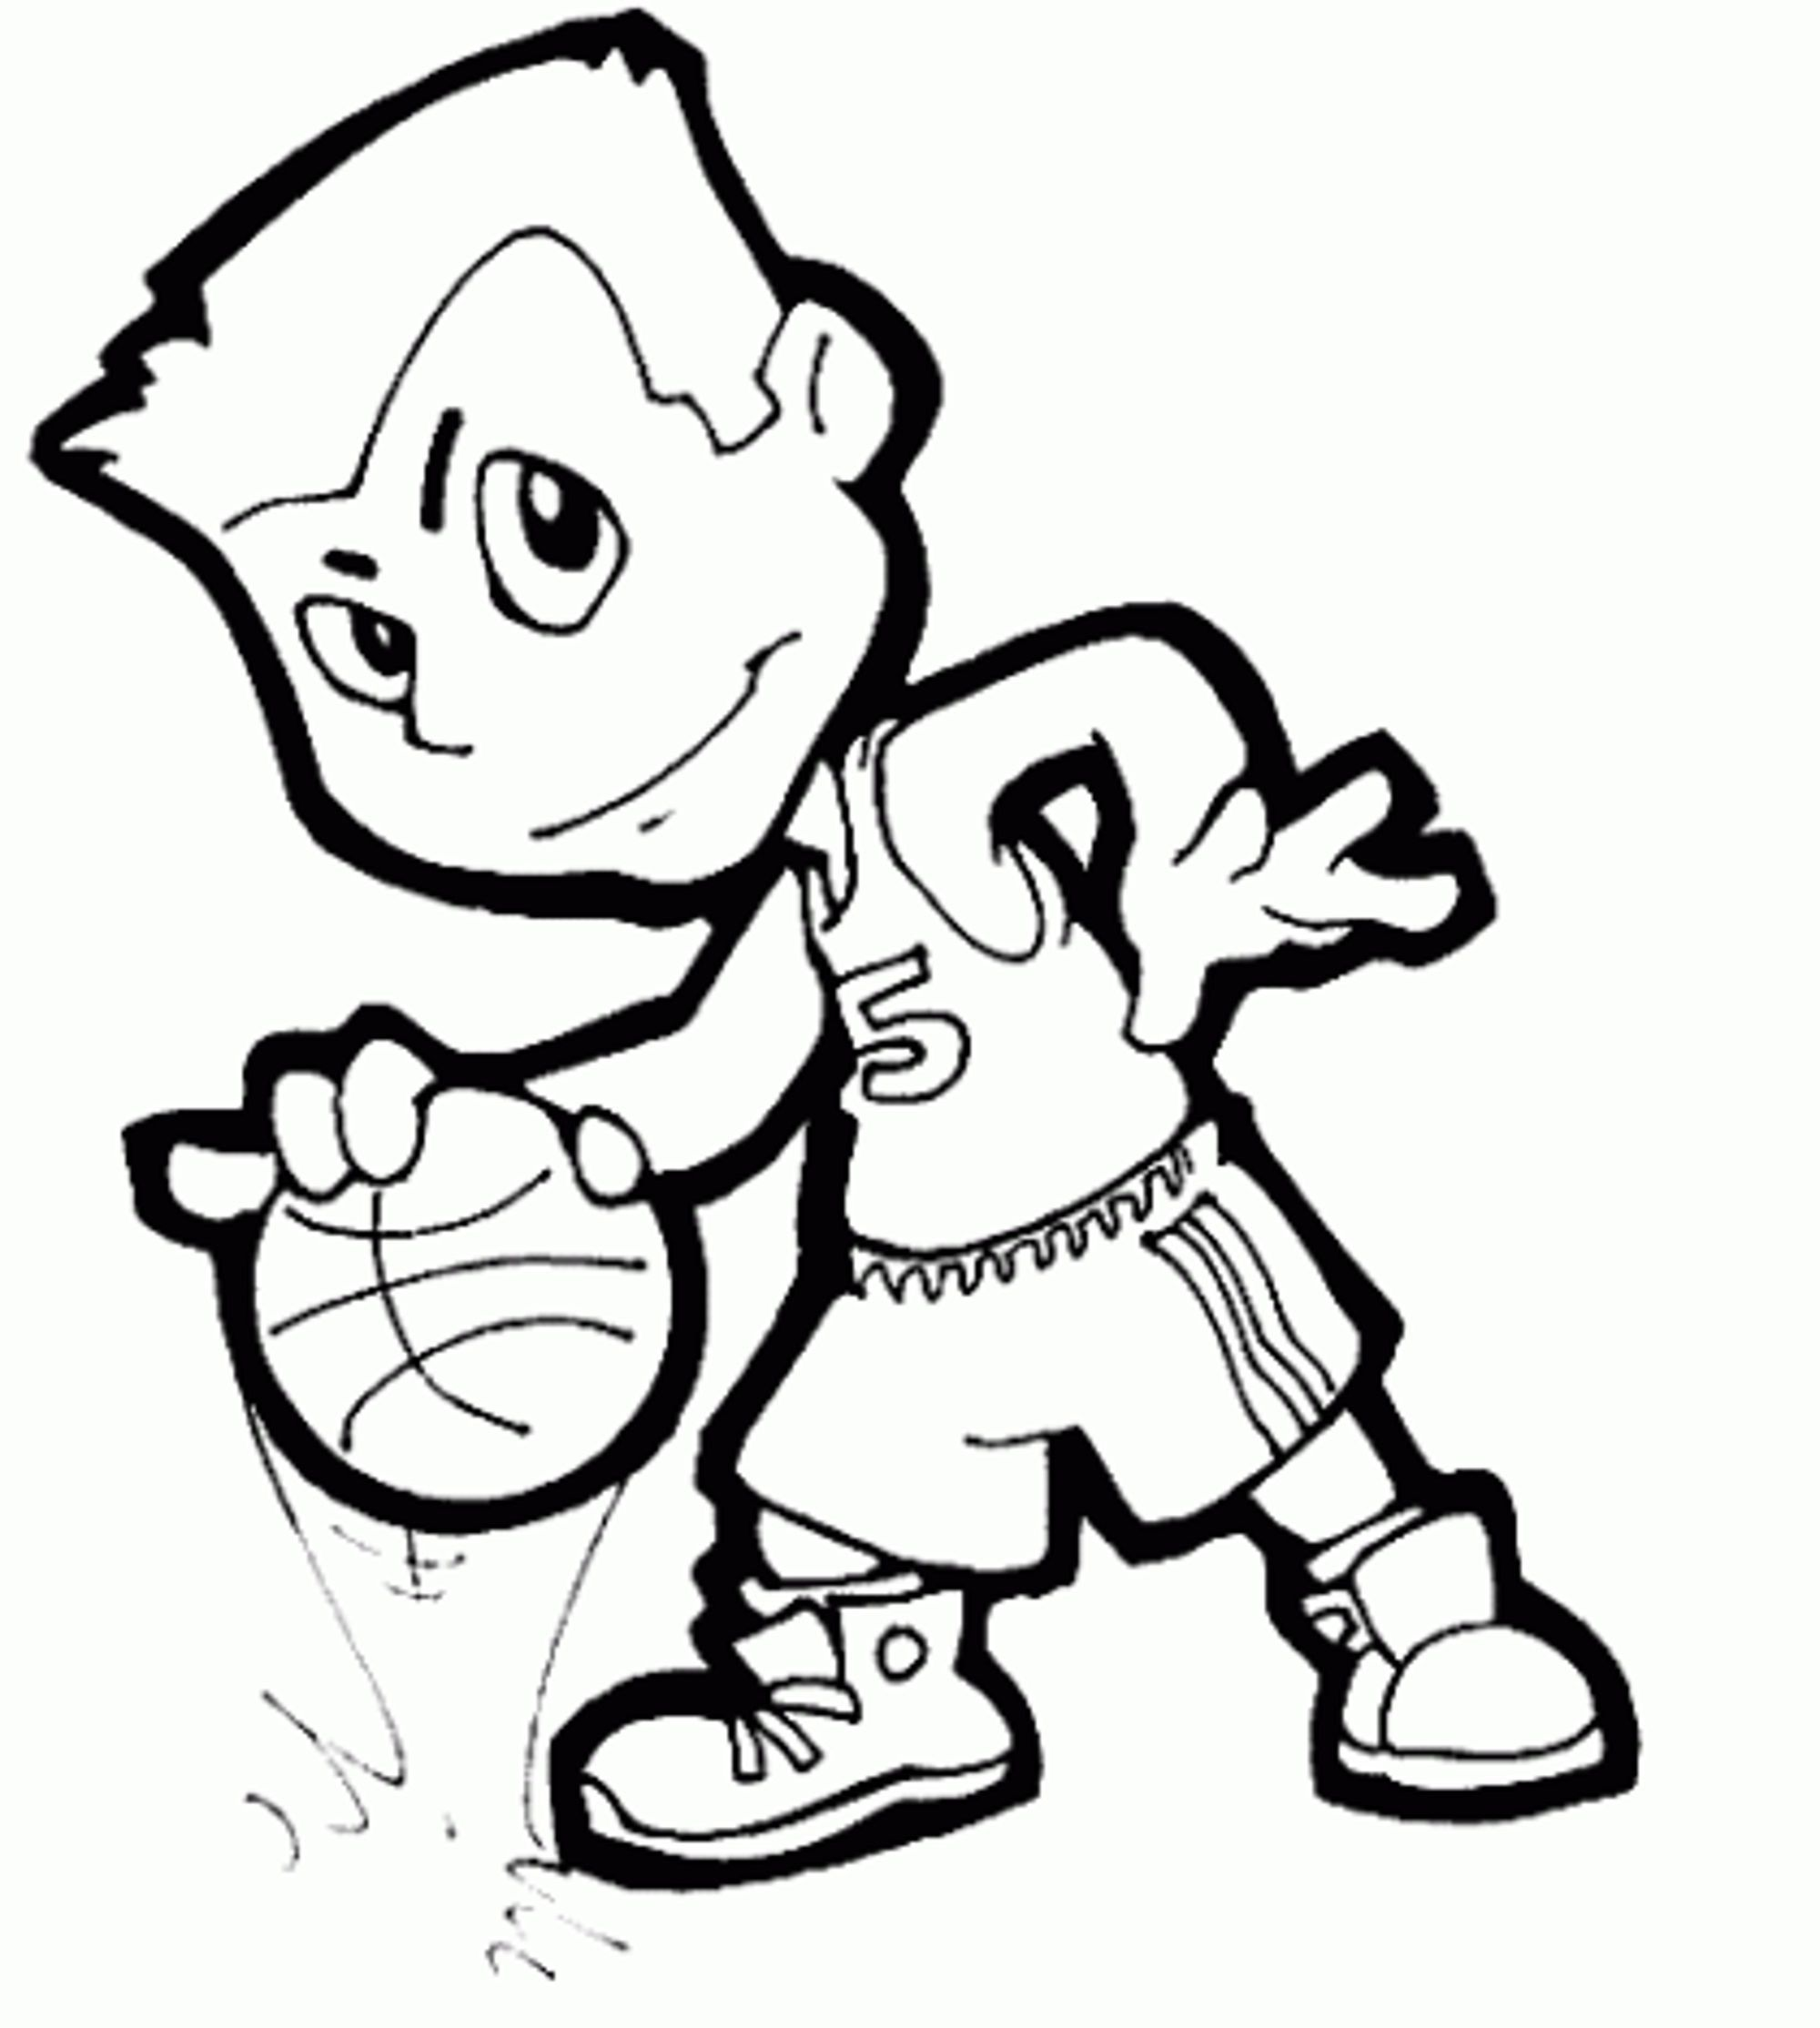 2000x2229 Basketball Coloring Pages Bestappsforkids Com Playing Page